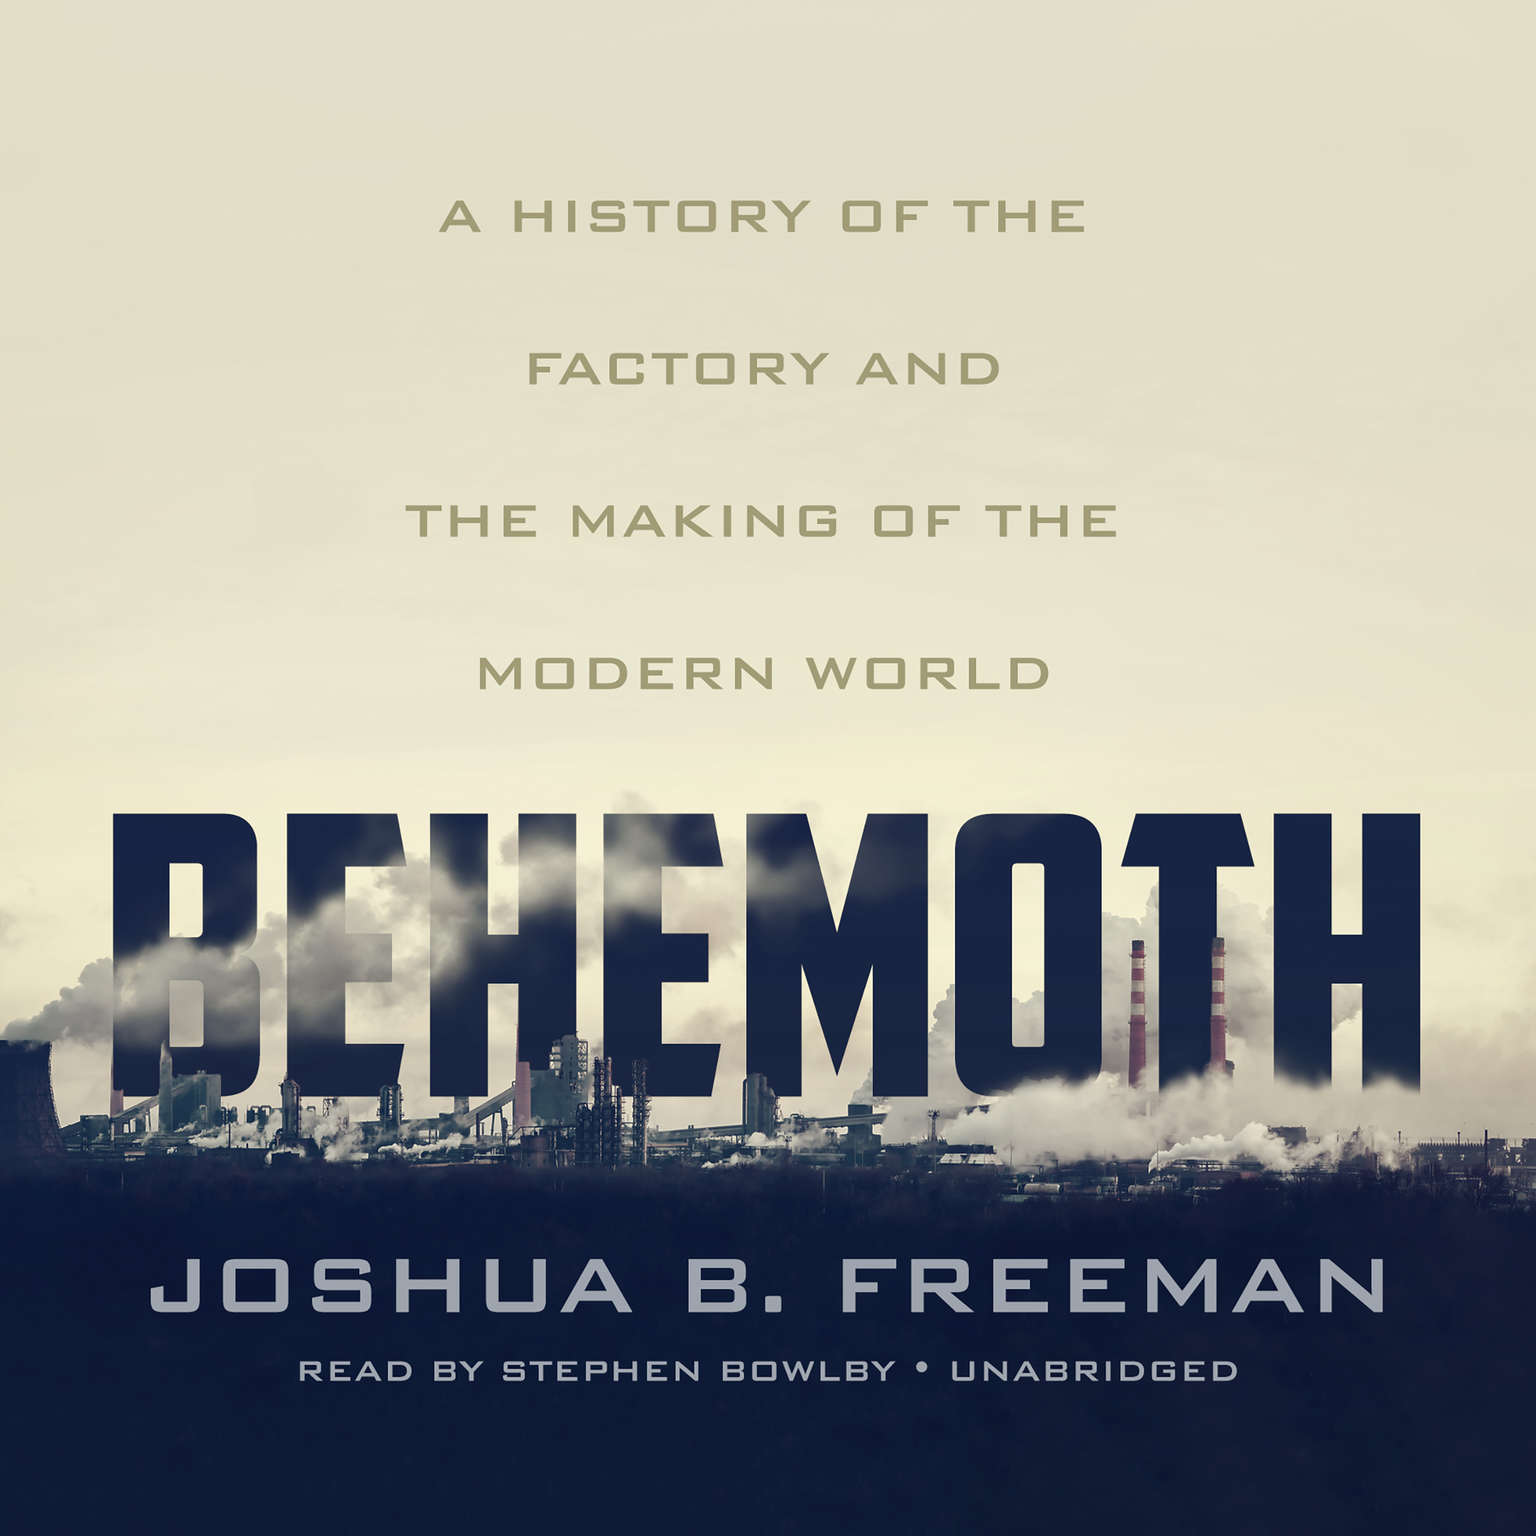 Behemoth: A History of the Factory and the Making of the Modern World Audiobook, by Joshua B. Freeman